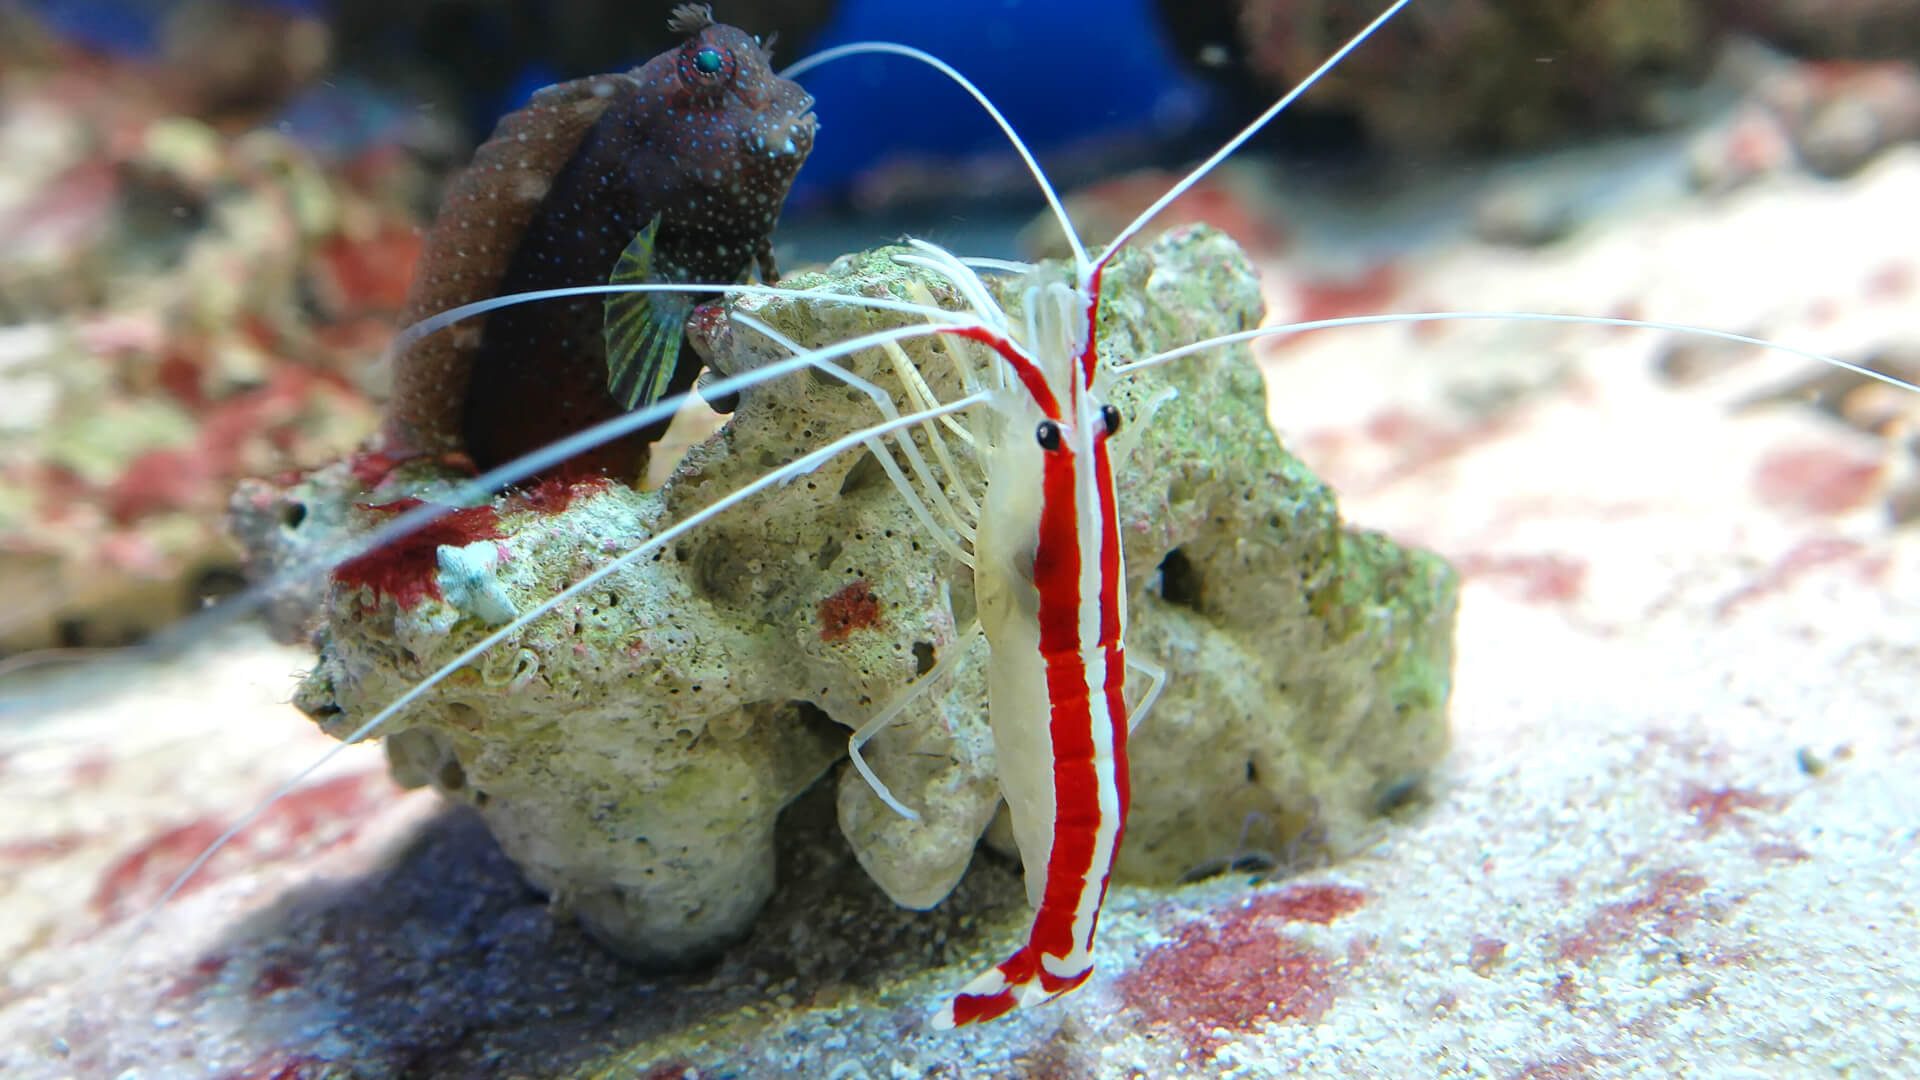 Beautiful Saltwater Cleaner Shrimp - Available at Aquatic Treasures of Las Vegas, Nevada